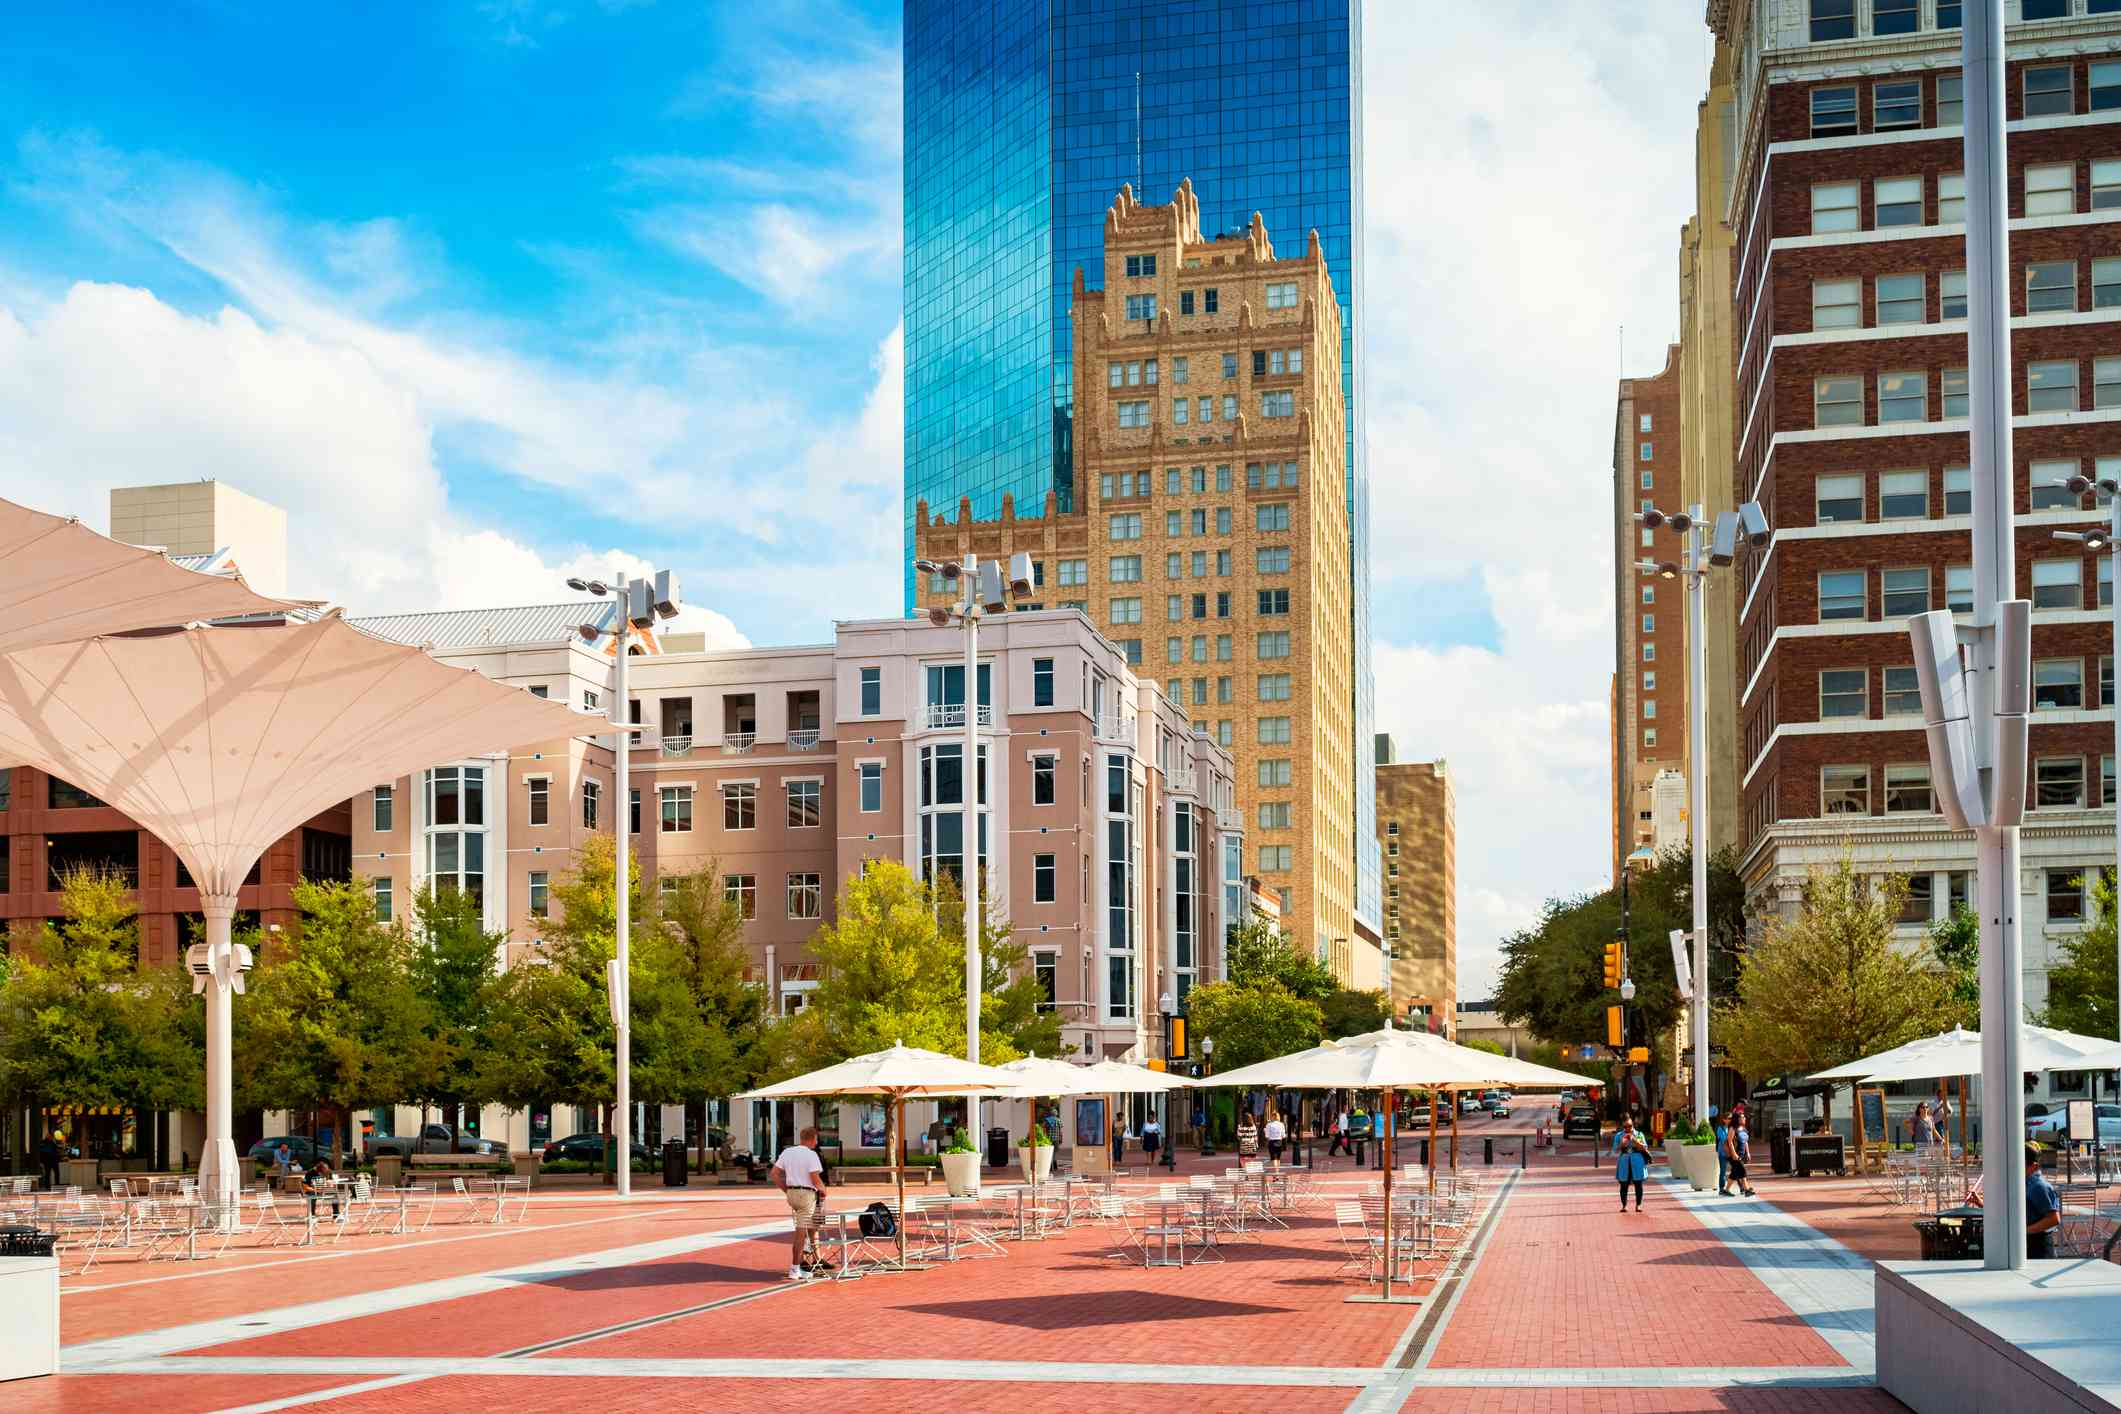 Sundance Square Plaza in downtown Fort Worth Texas USA